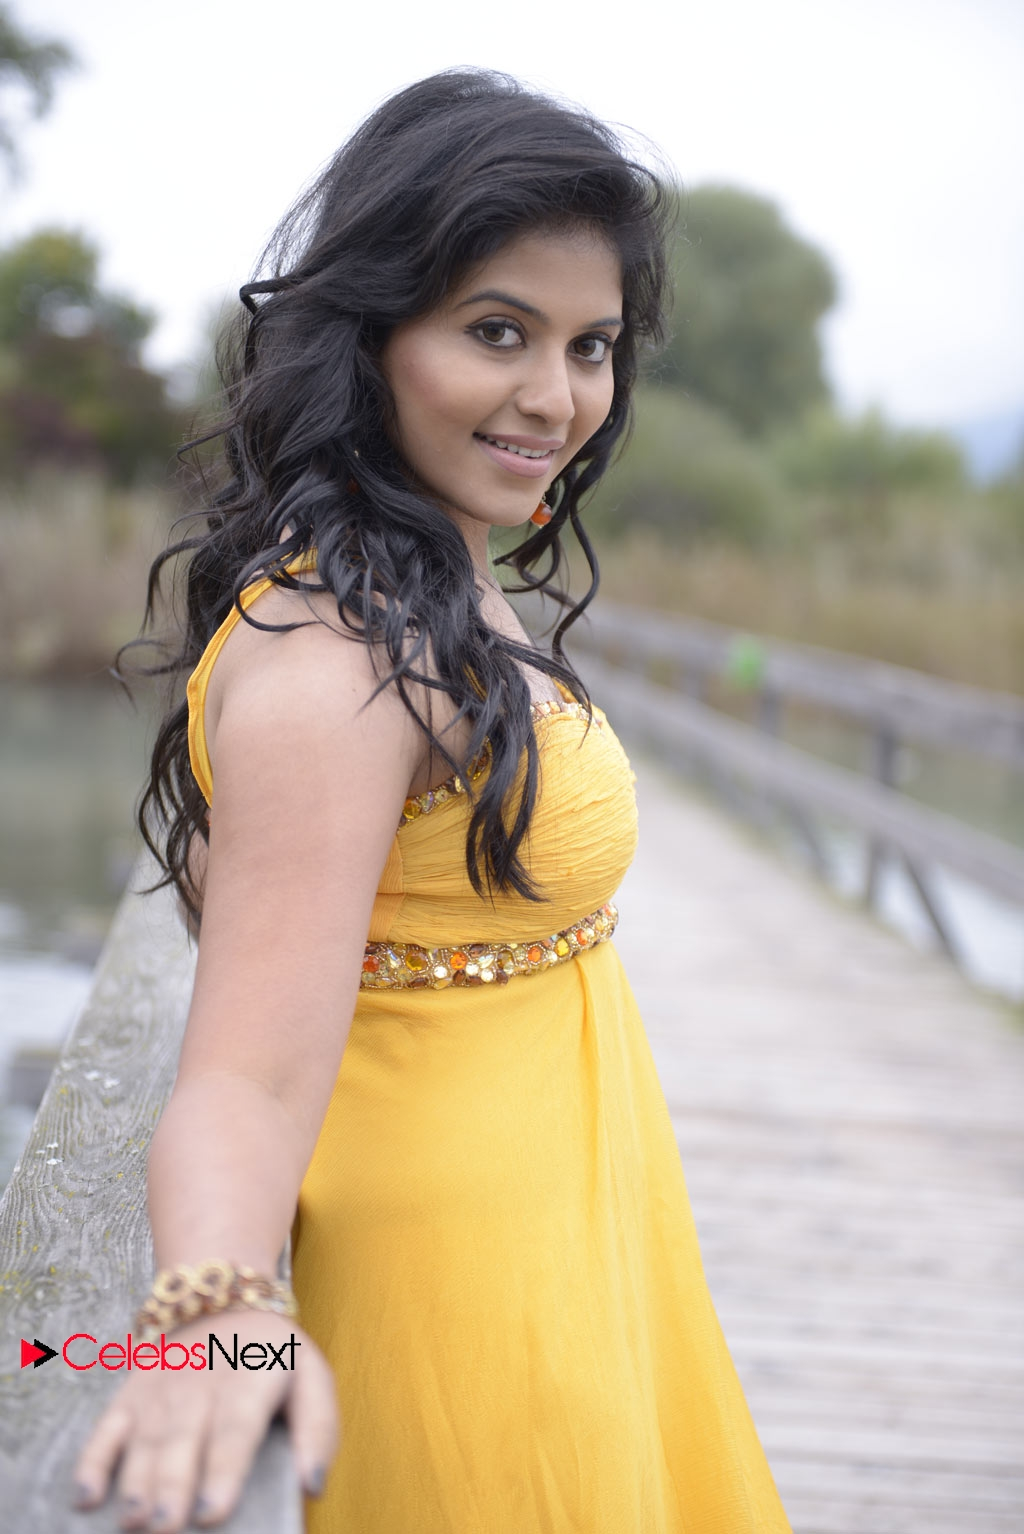 Cute Tamil Actress Wallpapers Celebsnext Bollywood And South Indian Cinema Actress